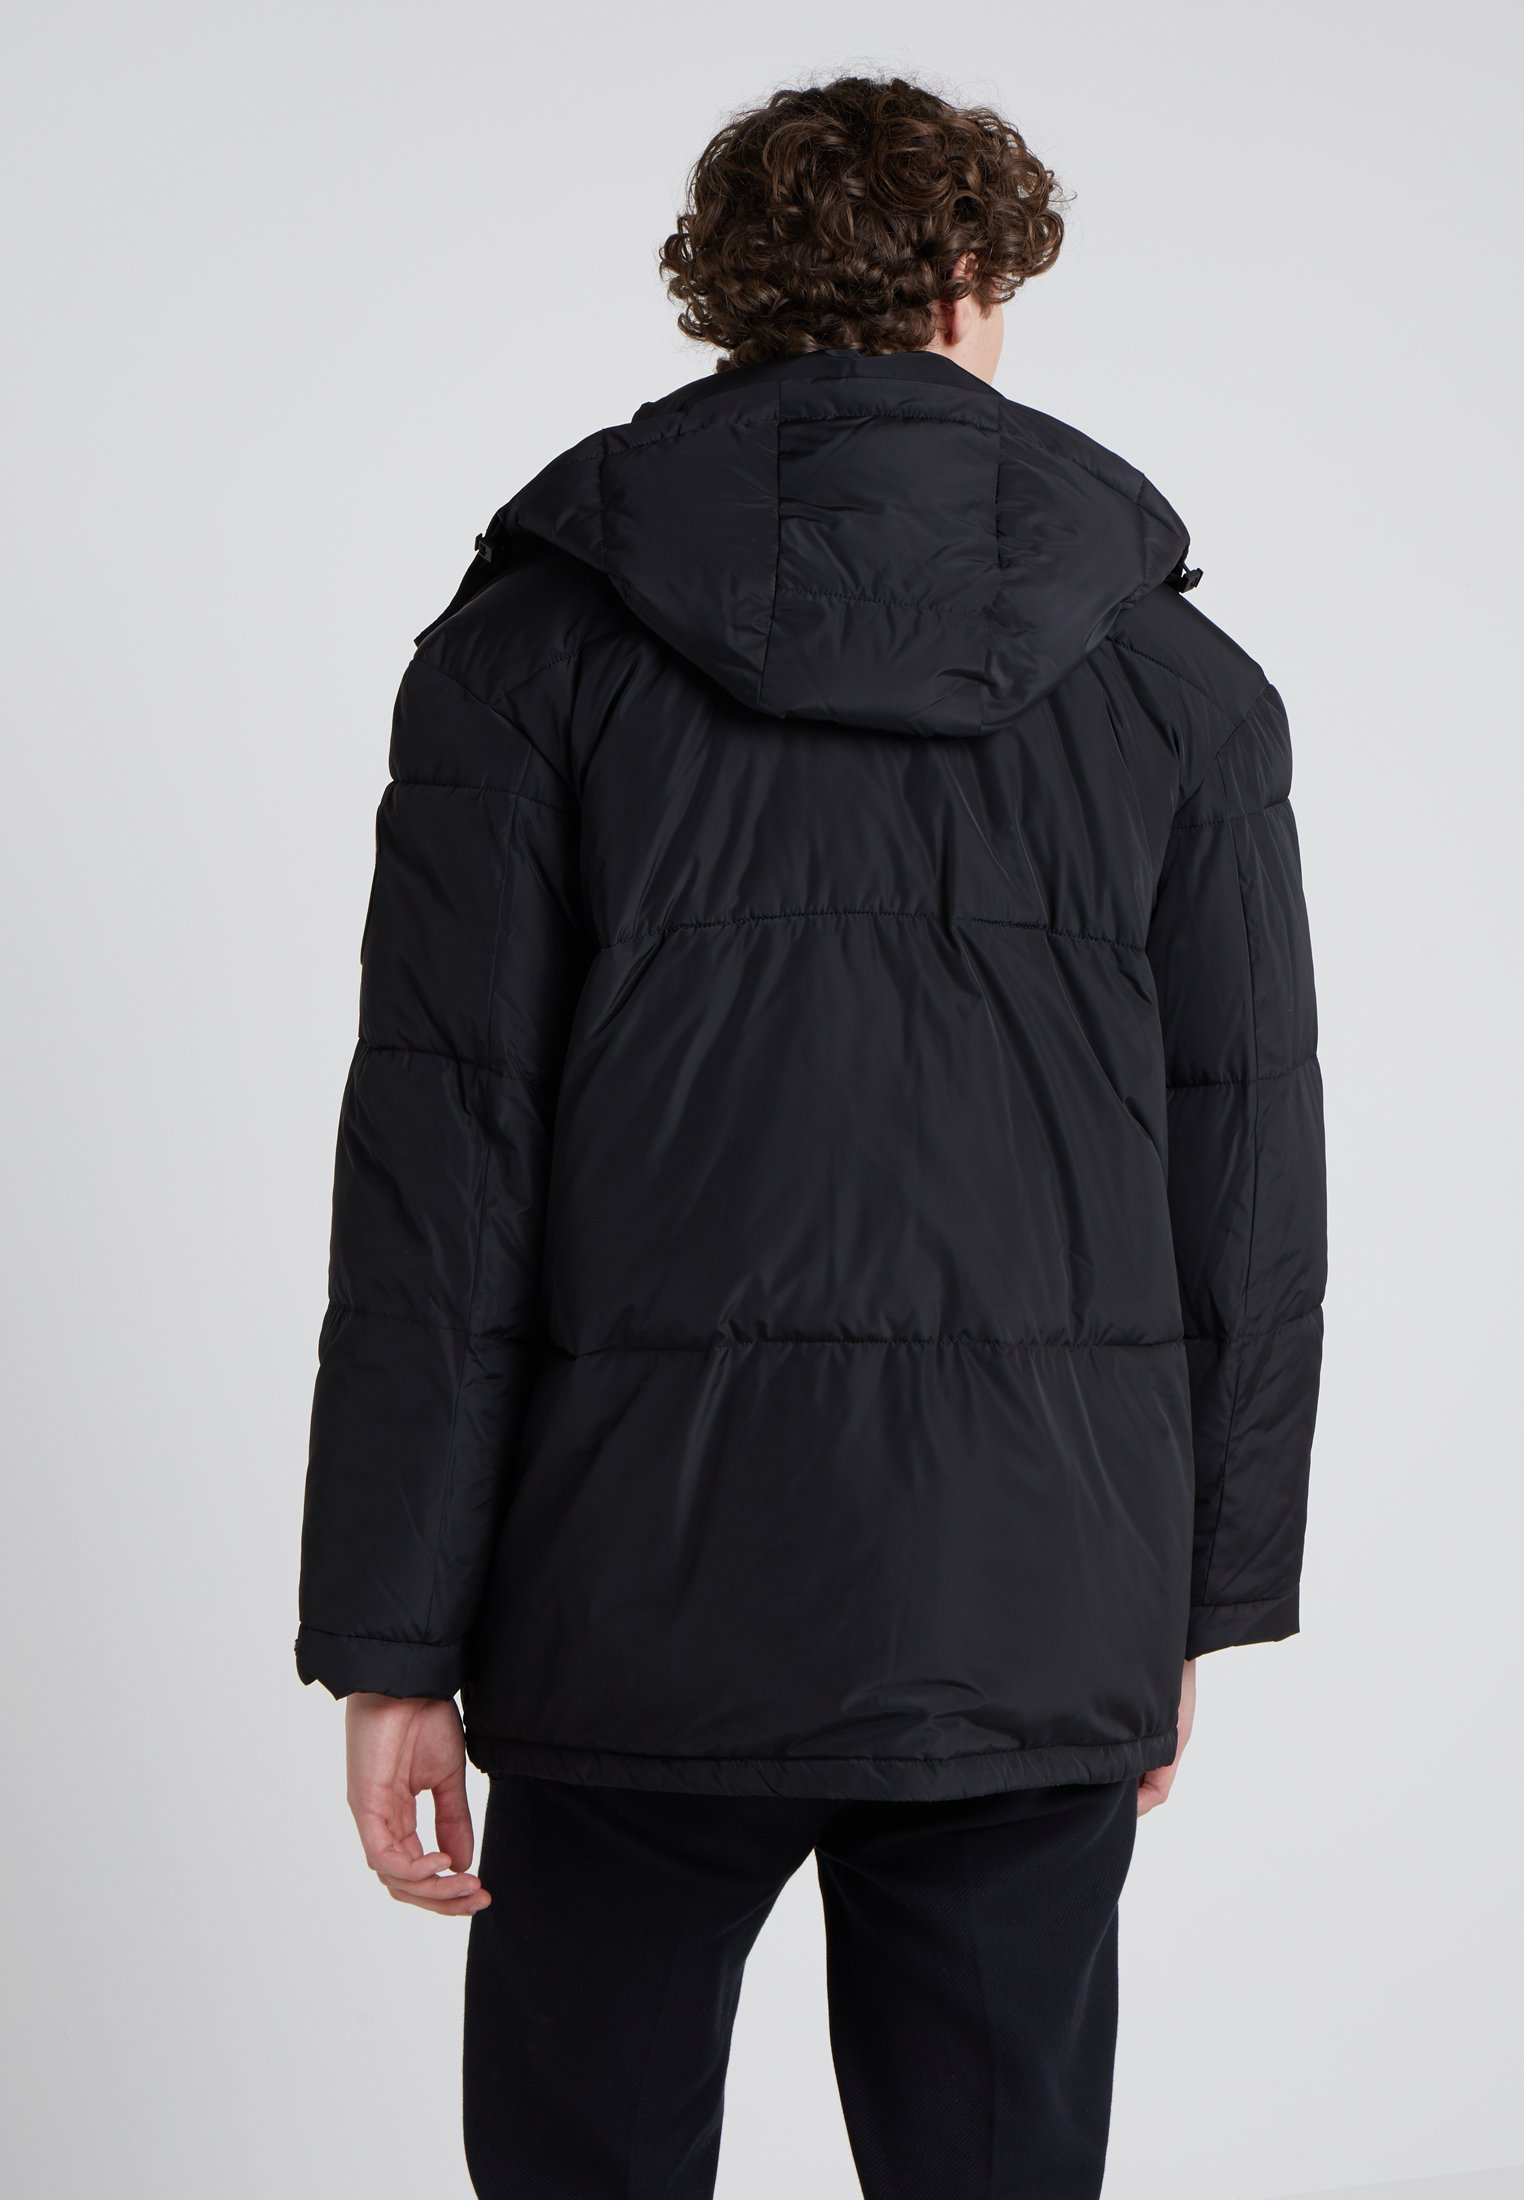 Updated Black New Dkny D'hiver BubbleVeste rChtQdsBx